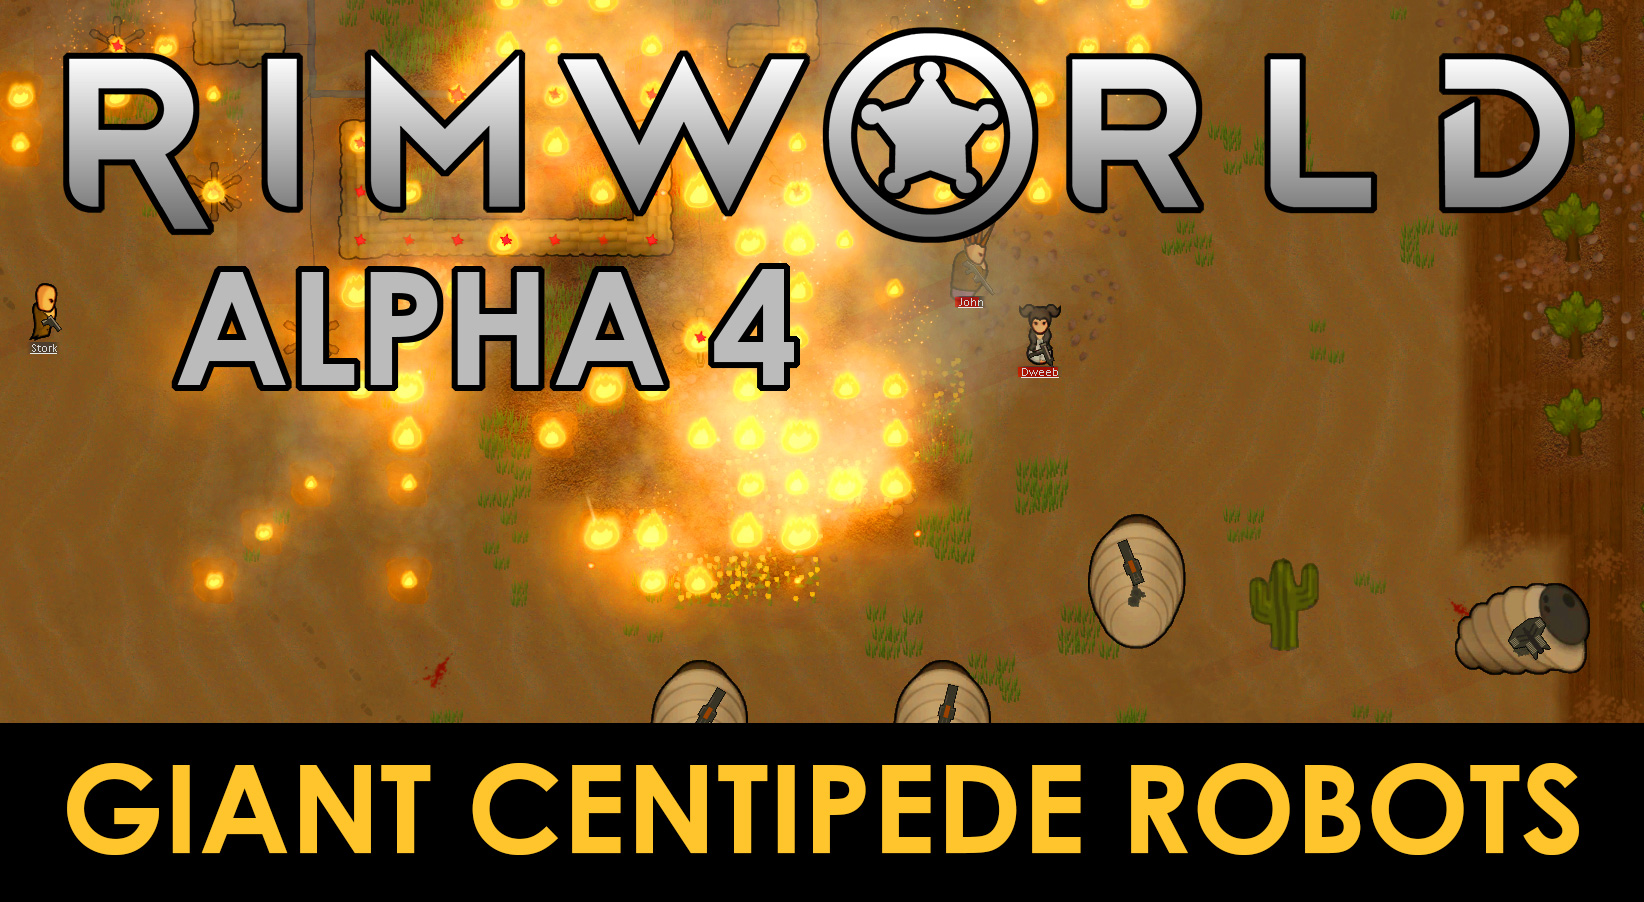 how to get rimworld on new pc